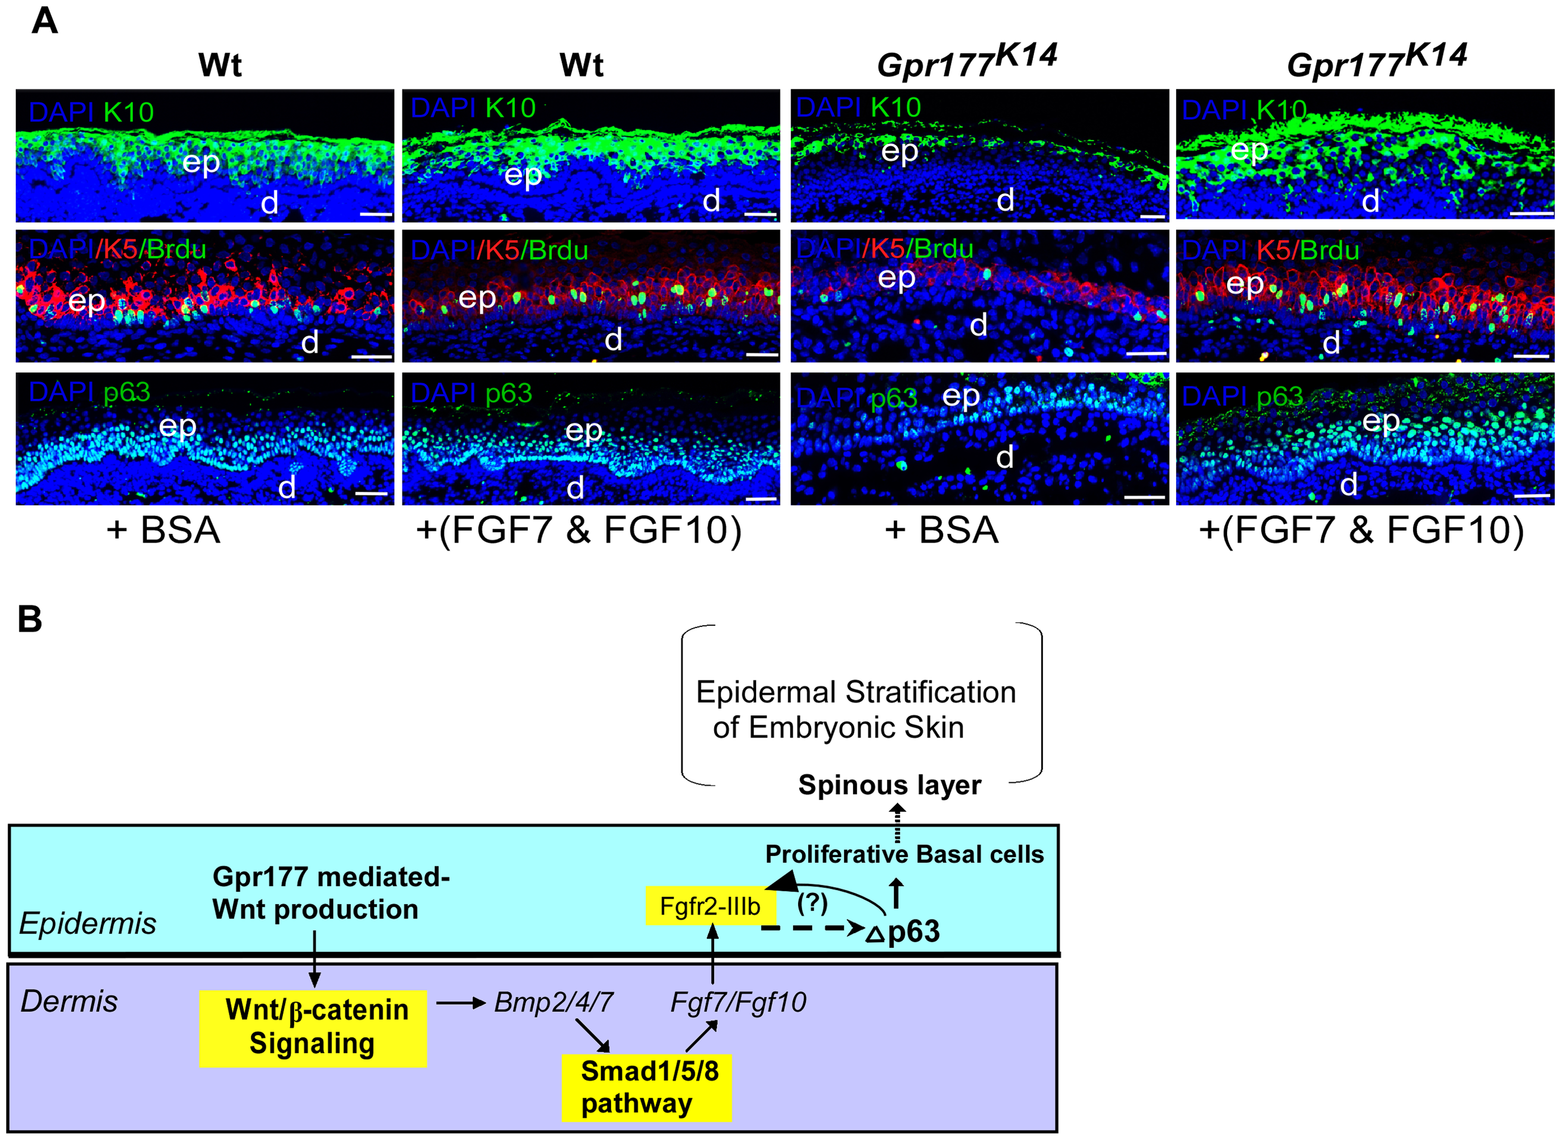 FGF7/FGF10 in dermis promotes the embryonic epidermal stratification in response to Wnt signaling.